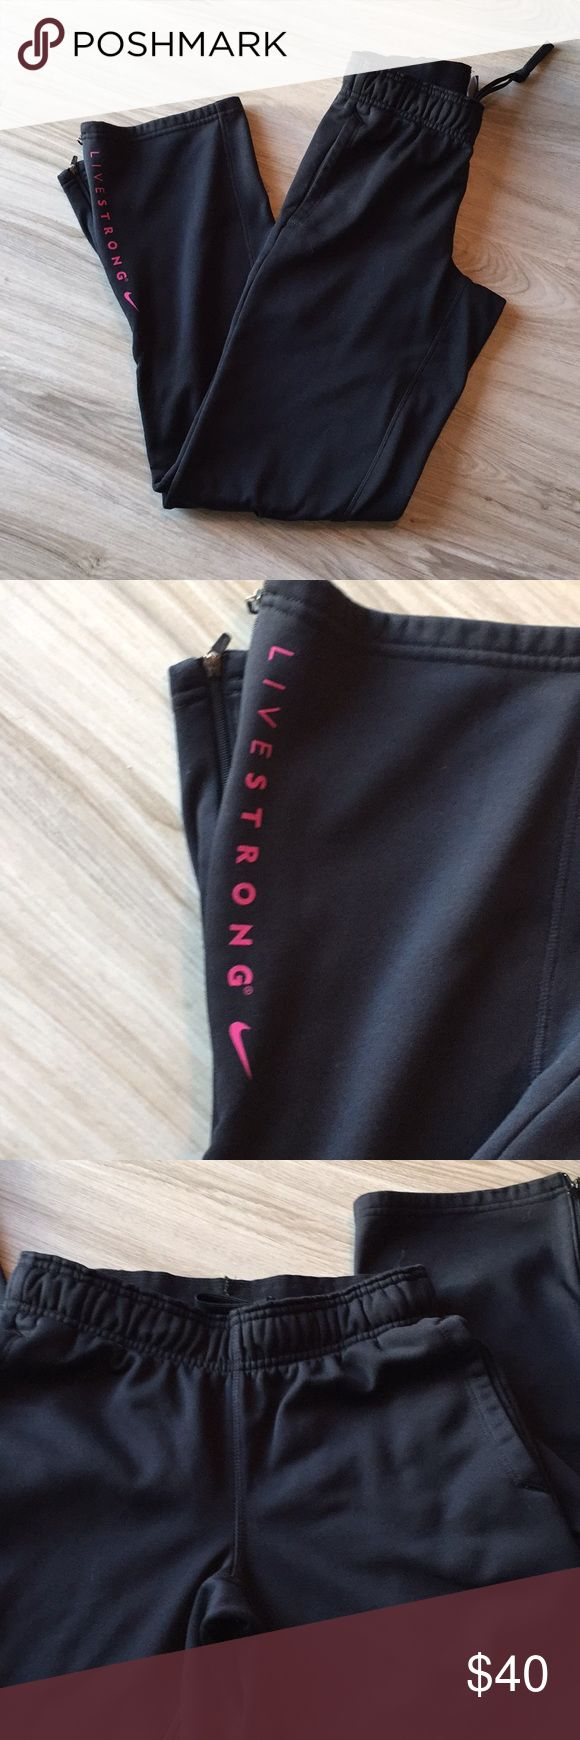 Nike livestrong sweatpants Like new Nike livestrong sweatpants with pink logo on the leg as pictured. Nice thick material and fit in a more flattering way than most sweats! I love these I just never wear sweat pants . Nike Pants Track Pants & Joggers